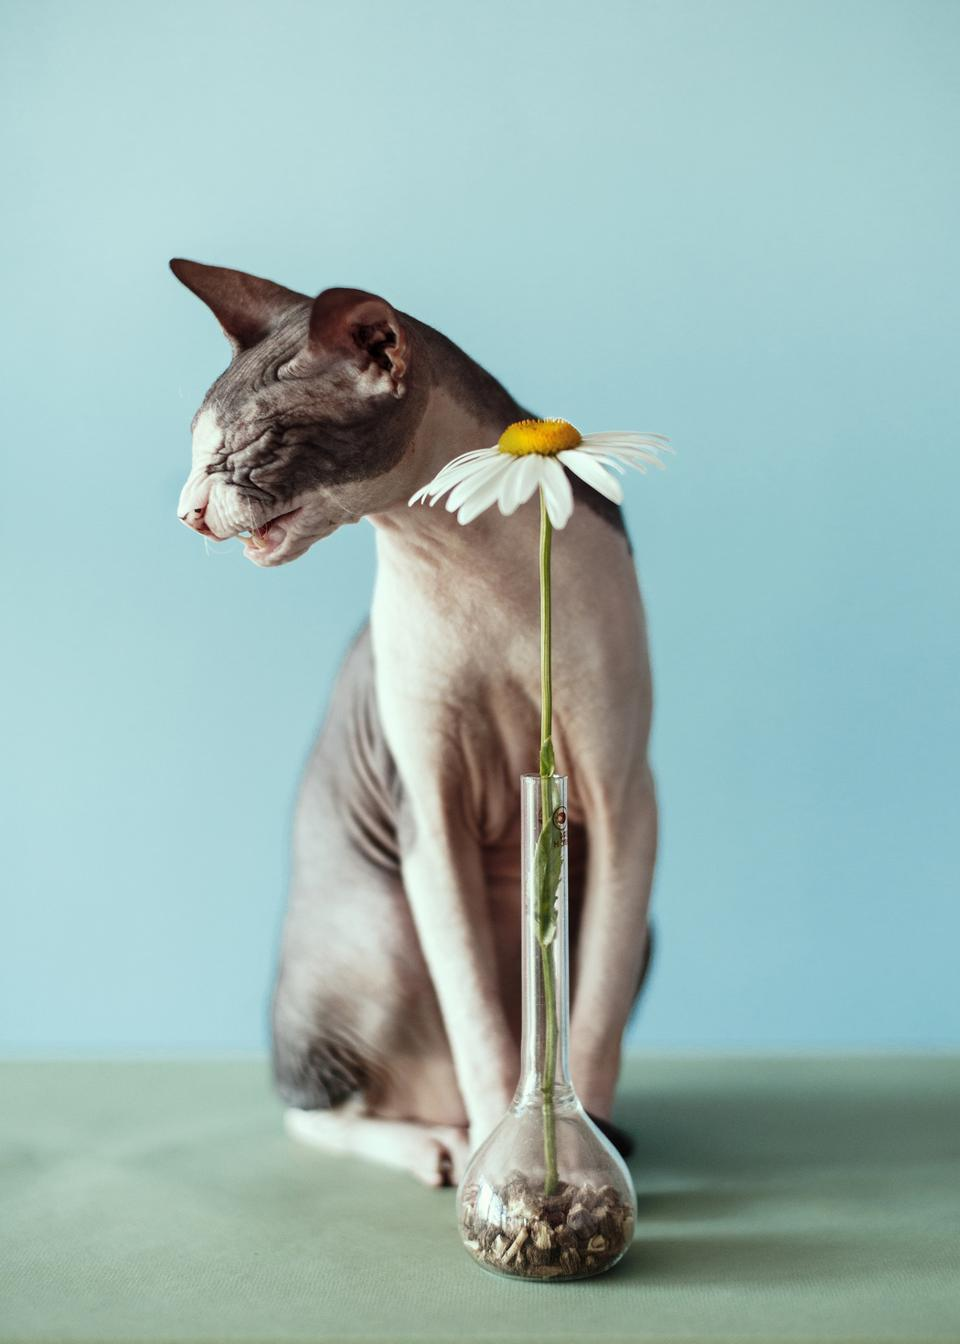 Sony World Photography Awards: still life of a cat  and a flower.